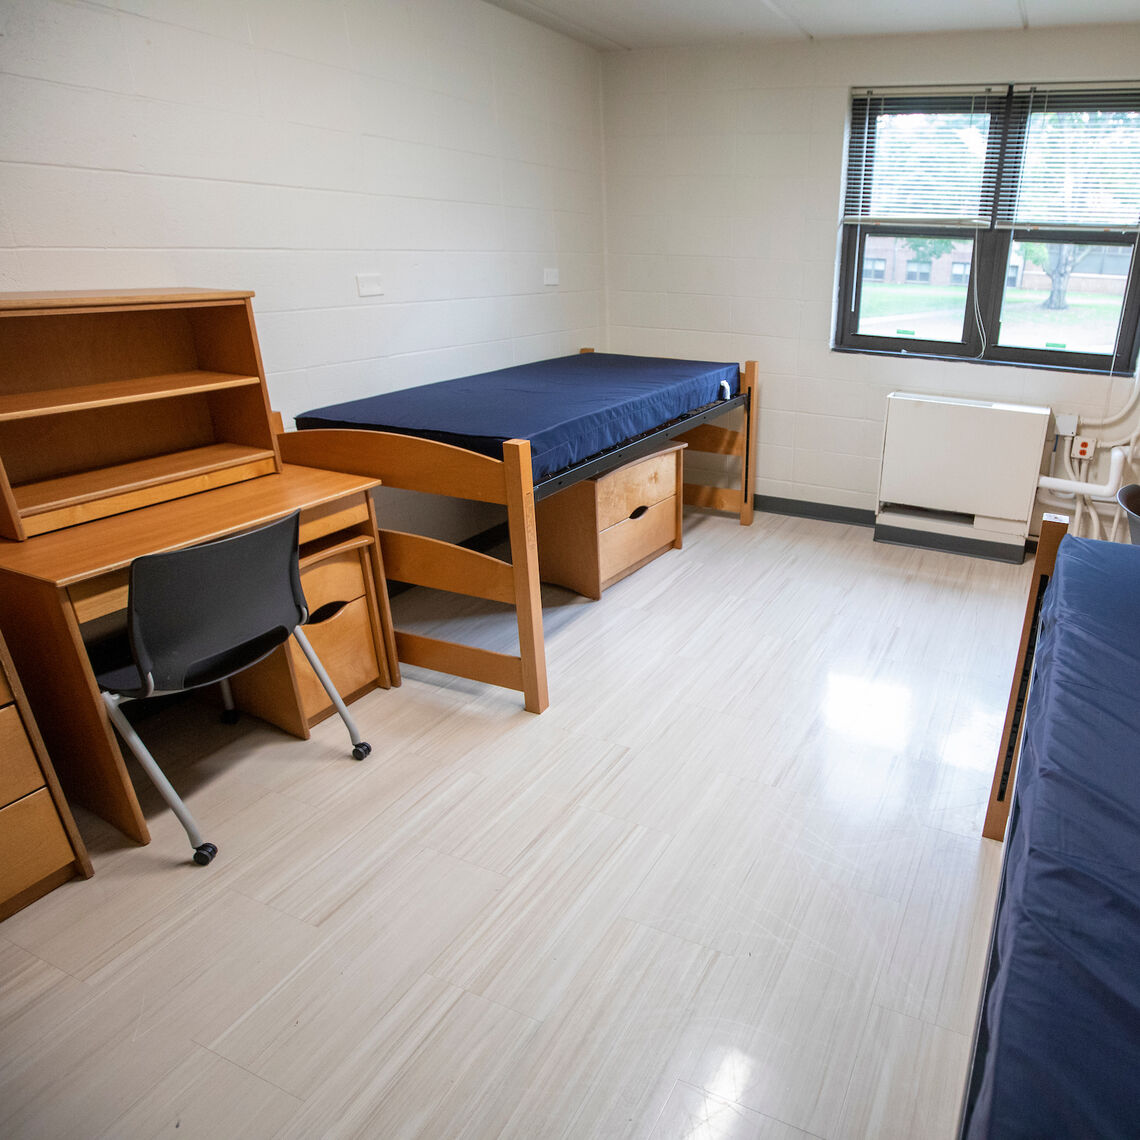 Typical room in South Benjamin Franklin Hall (Bonchek College House)